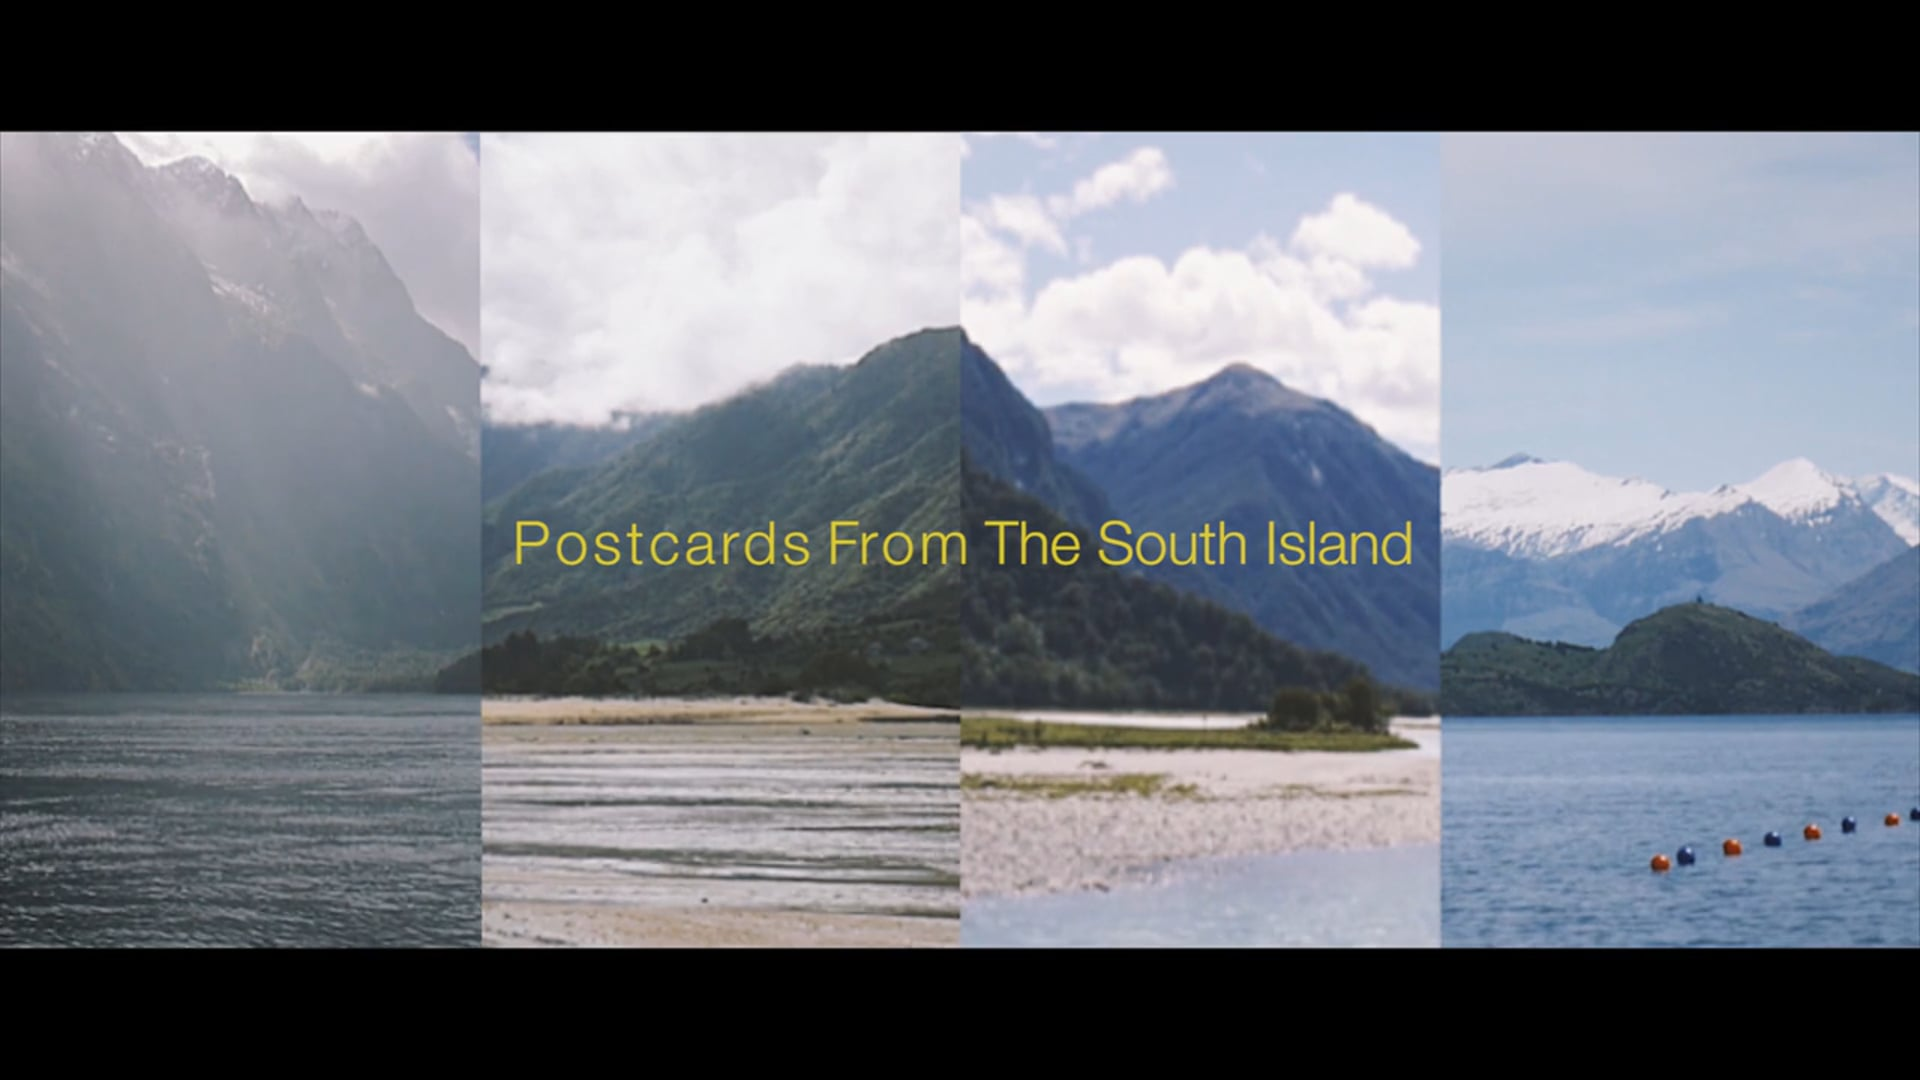 POSTCARDS FROM THE SOUTH ISLAND